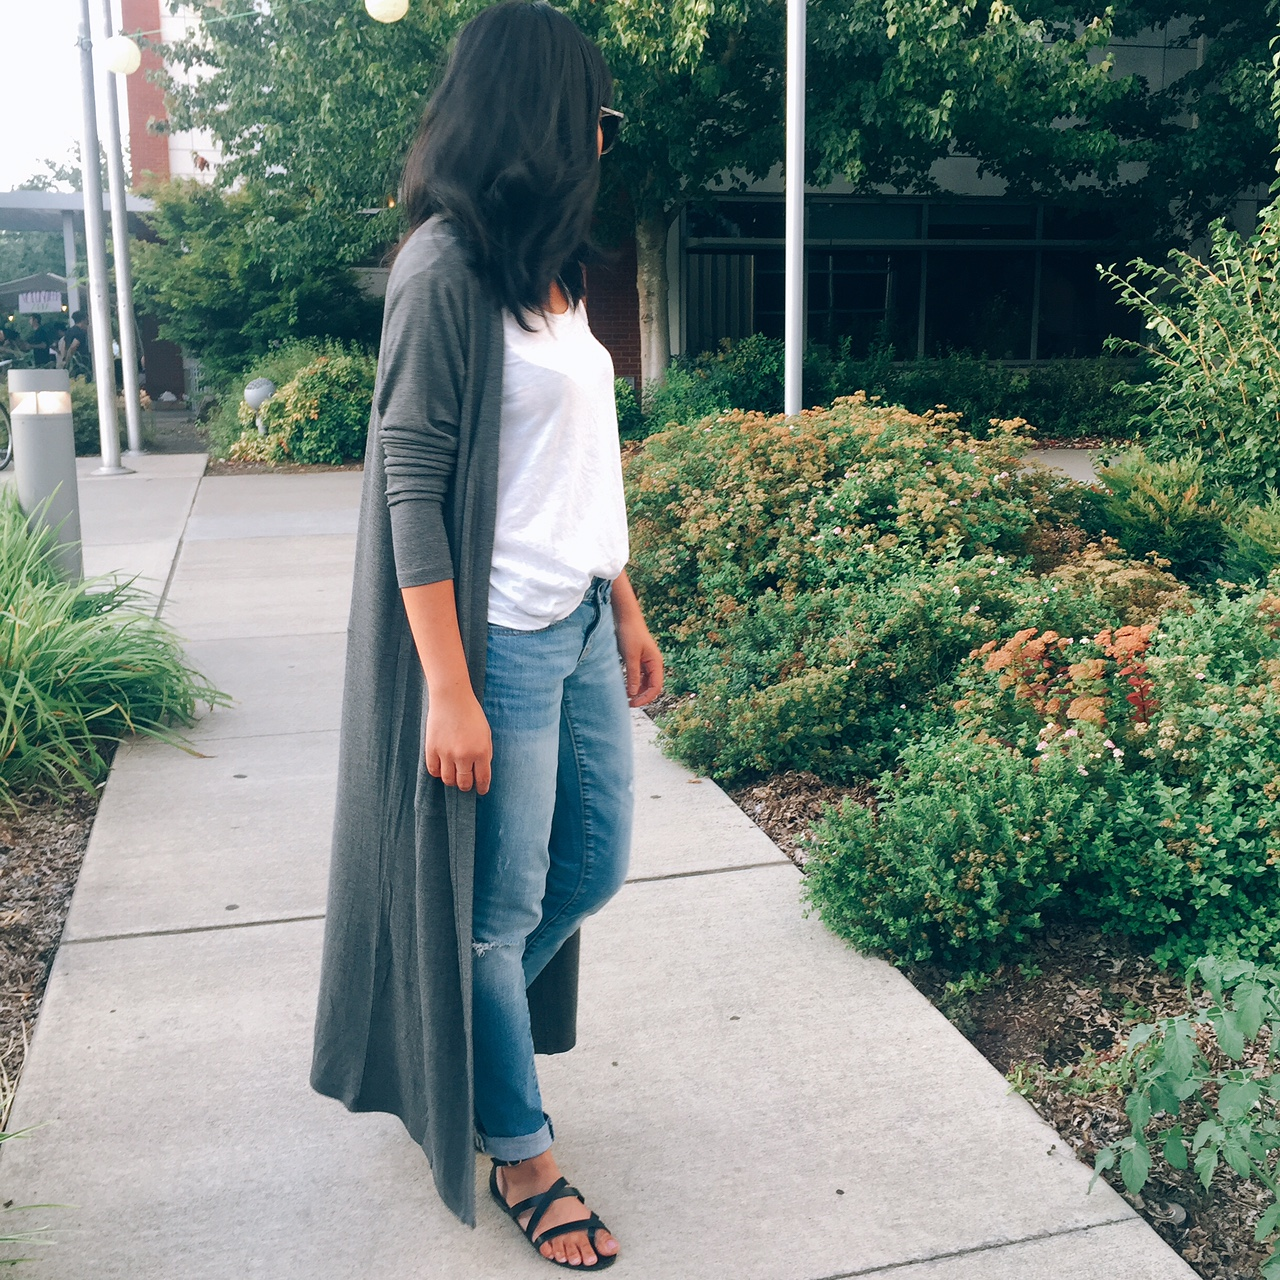 portland blogger, fashion blogger, yala designs, long grey cardigan, fall outfit 2017, basics, ripped jeans, white shirt, strappy sandals, locally owned, giveaway, freebies, sponsored